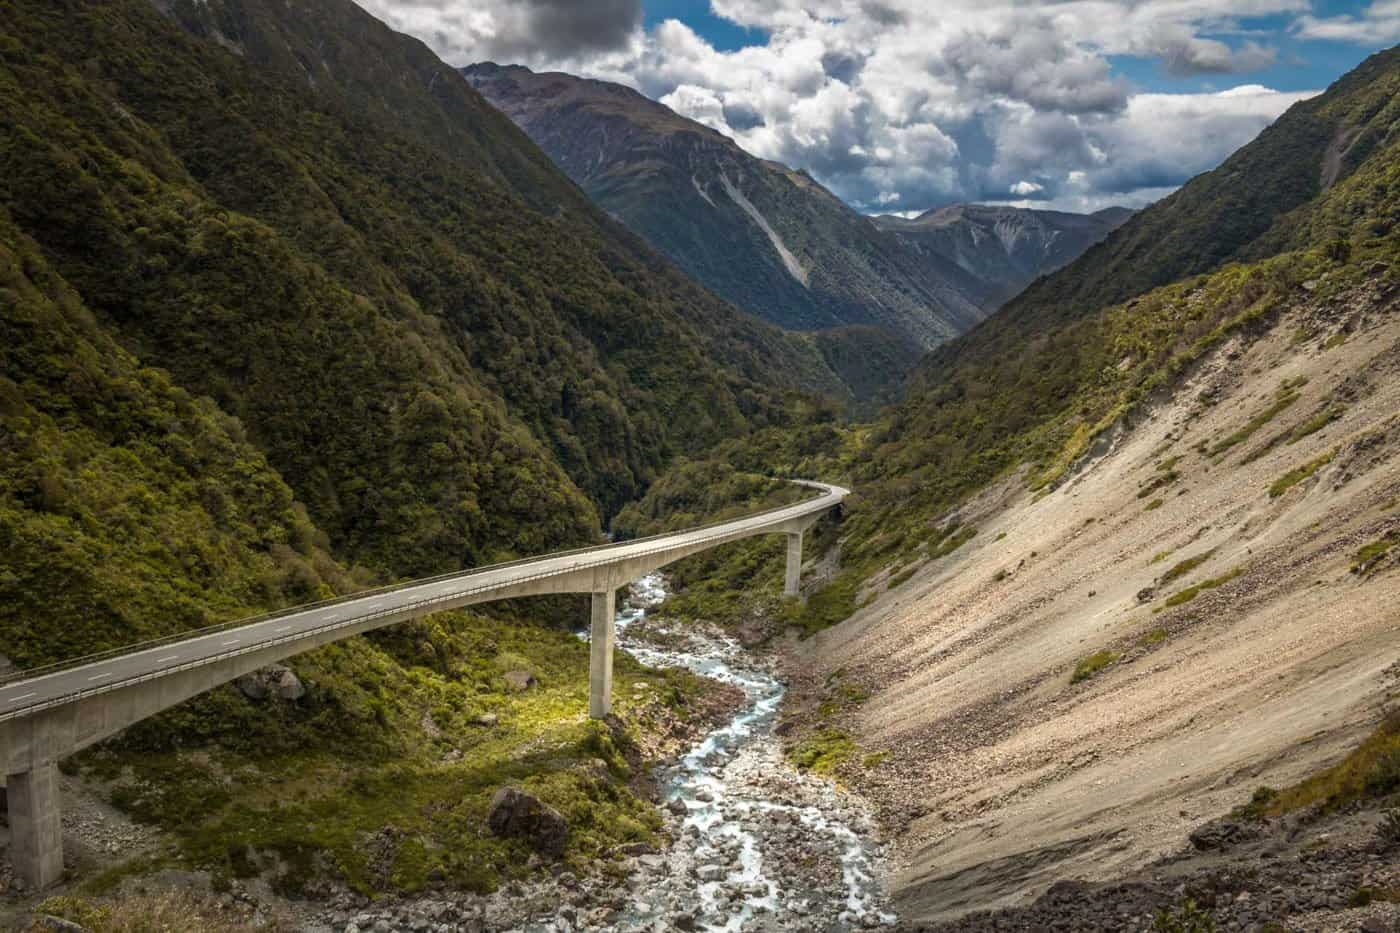 The Otira Viaduct carves its way through the mountains of Arthur's Pass NP.